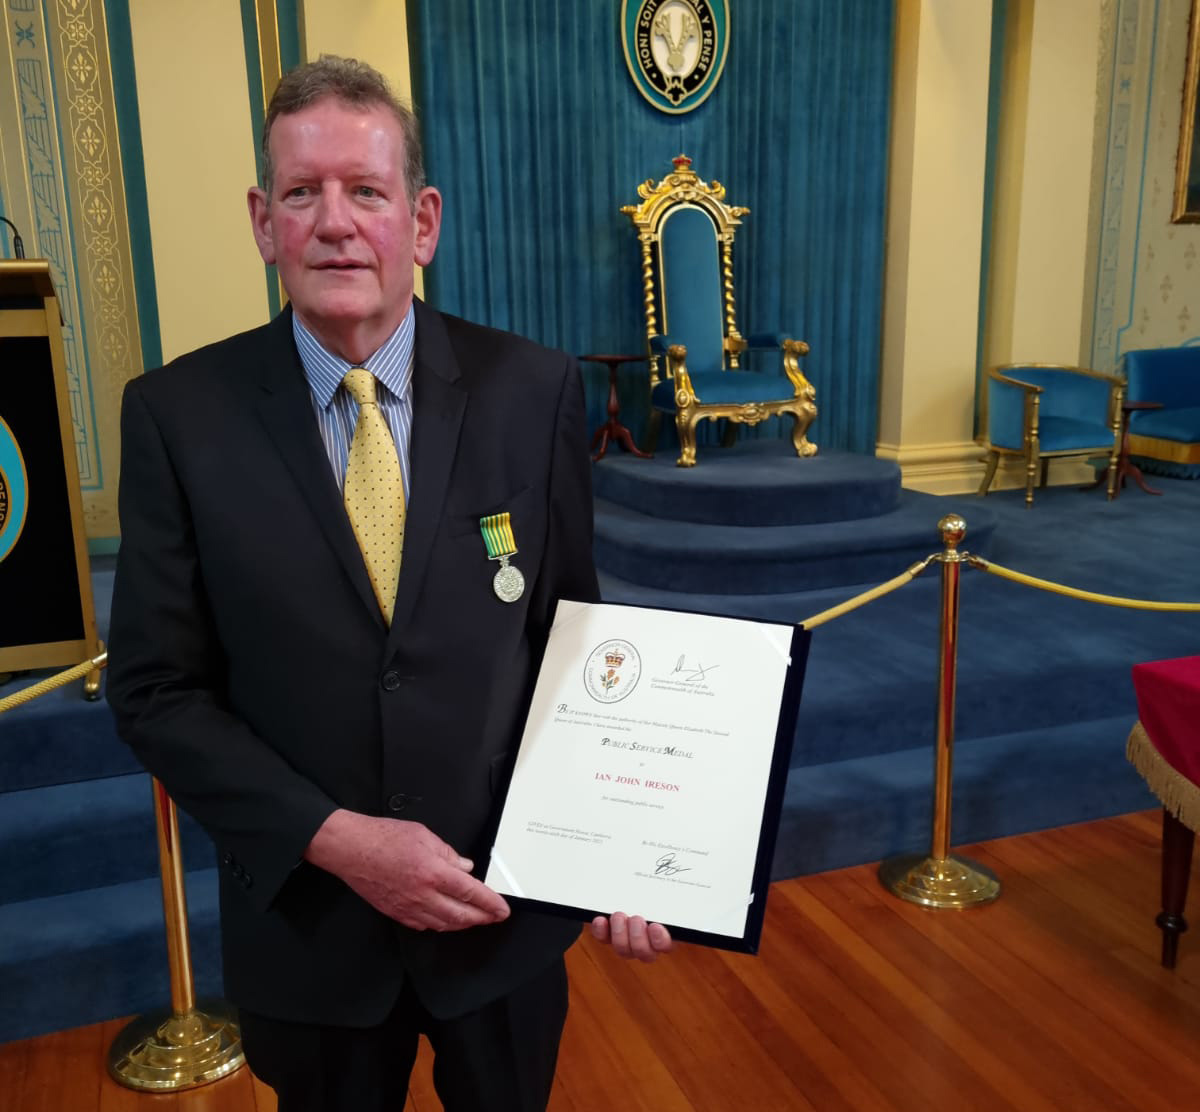 Former Land Use Victoria Chief Executive Ian Ireson awarded public service medal at Government House